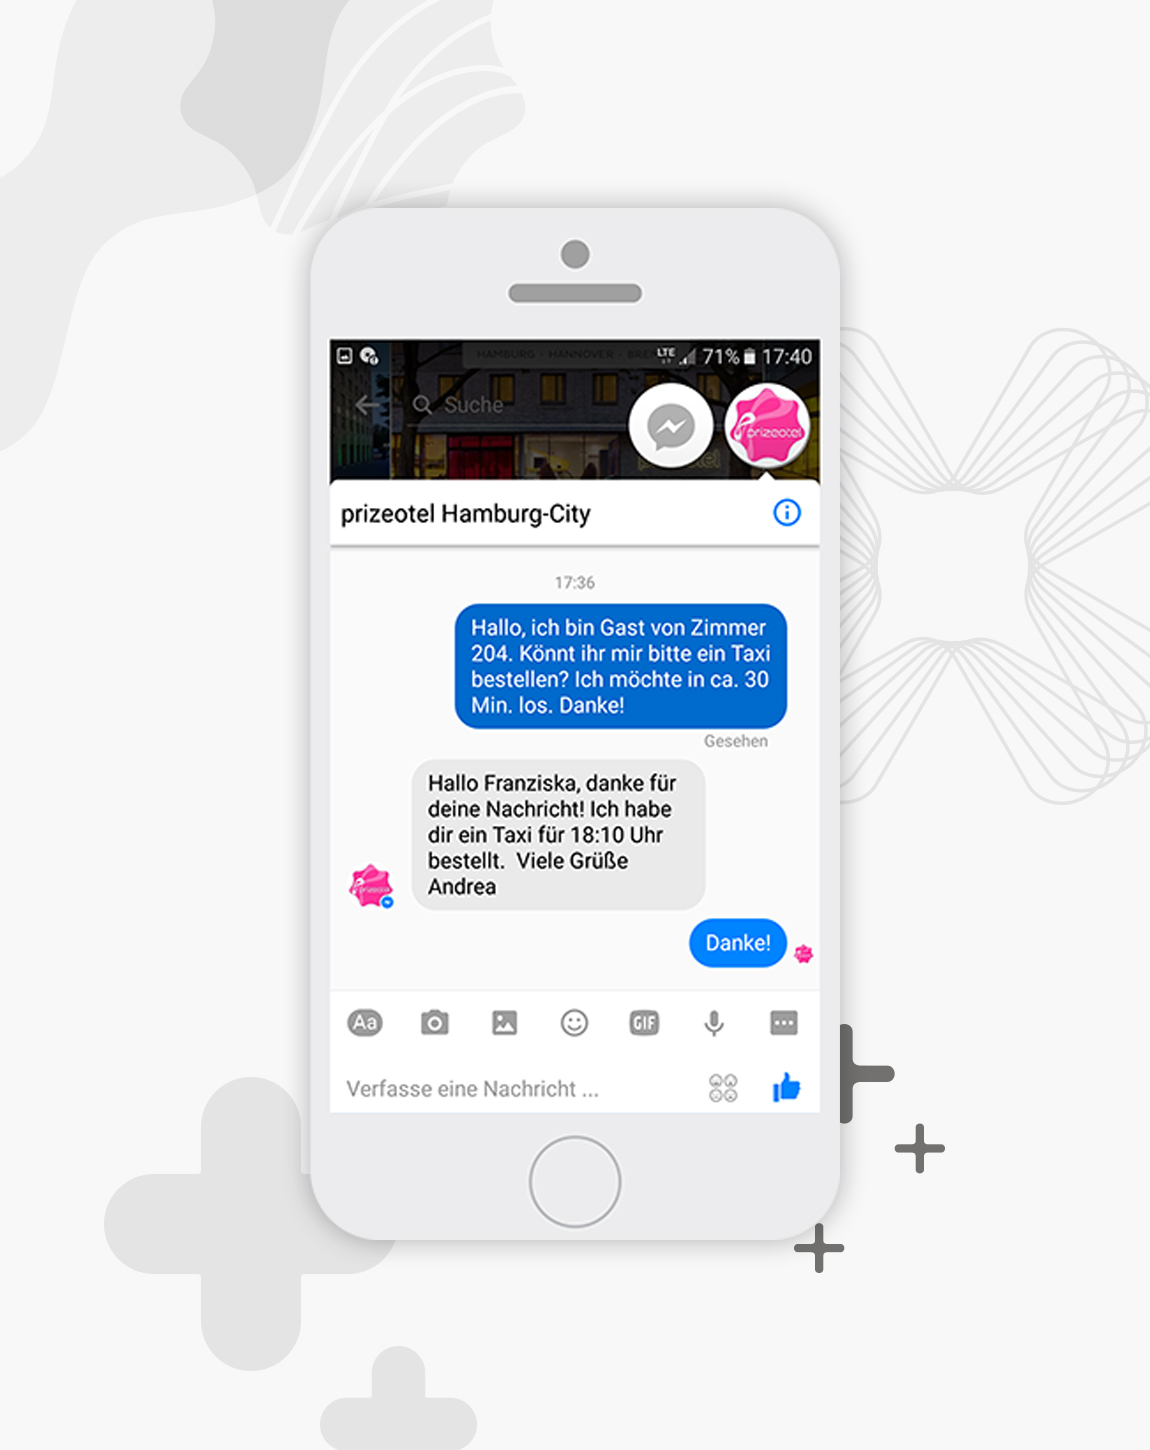 chat with prizeotel on facebook messenger